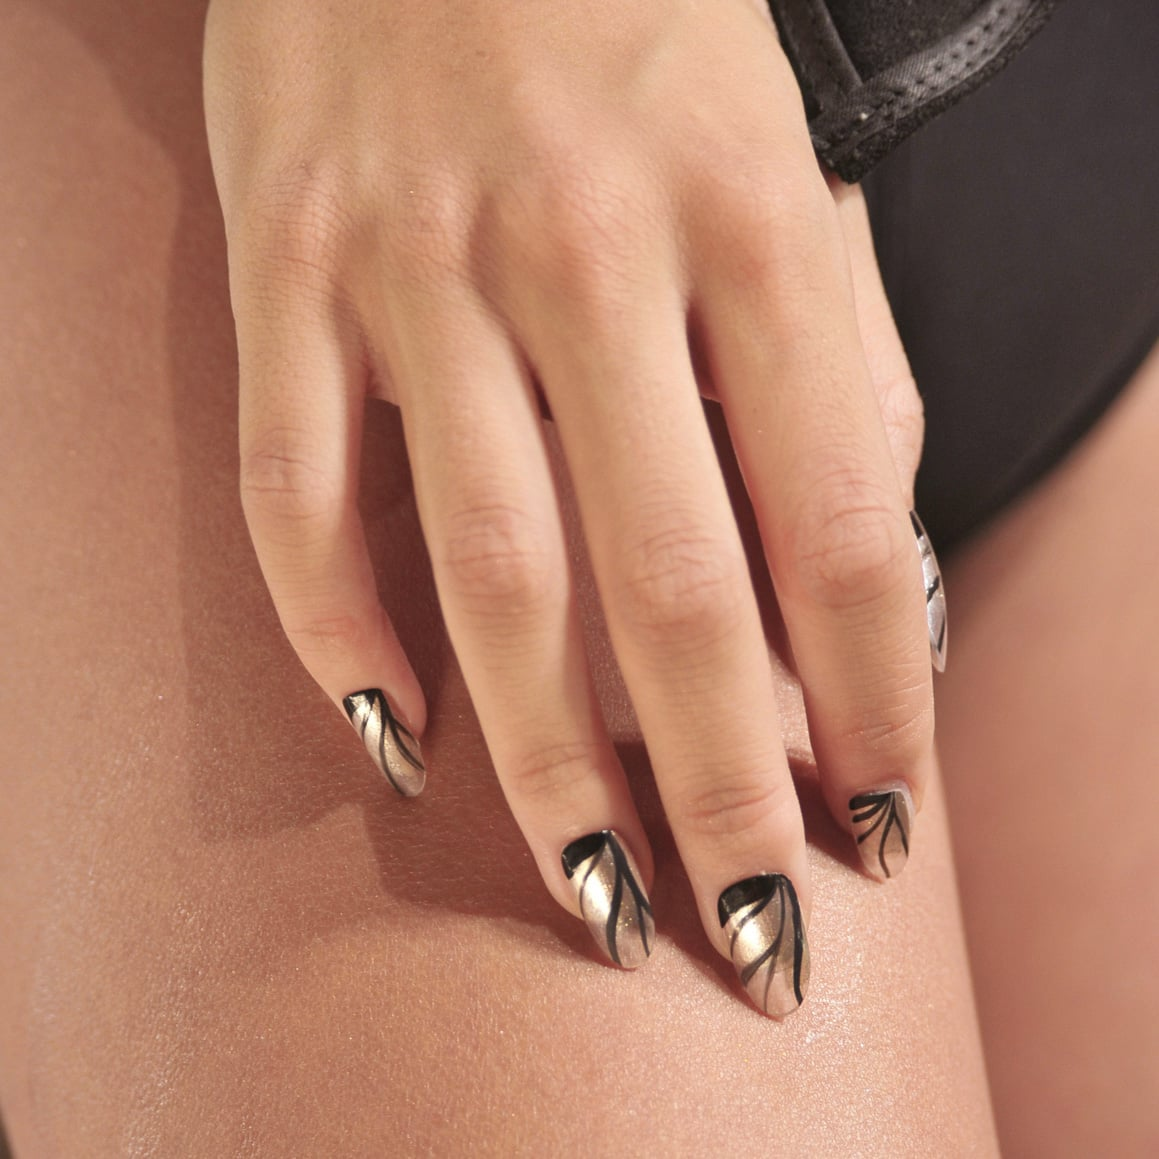 Metallic Nail Polish Trend | Summer 2013 | POPSUGAR Beauty